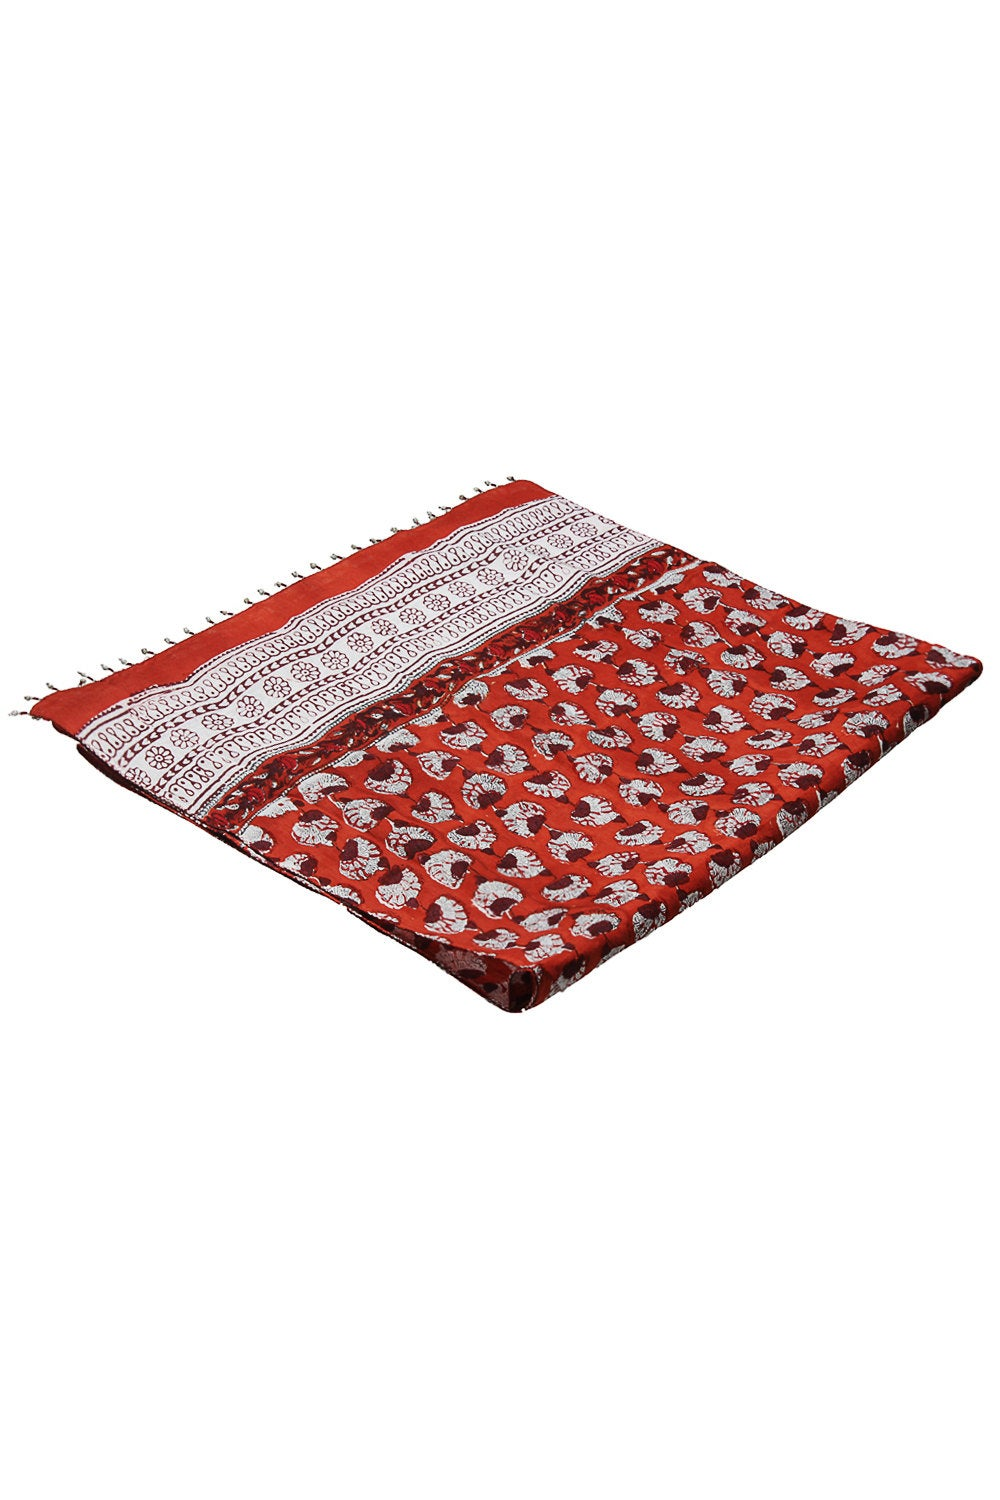 Hand block printed women scarf in dark orange/ rust colour with beads border